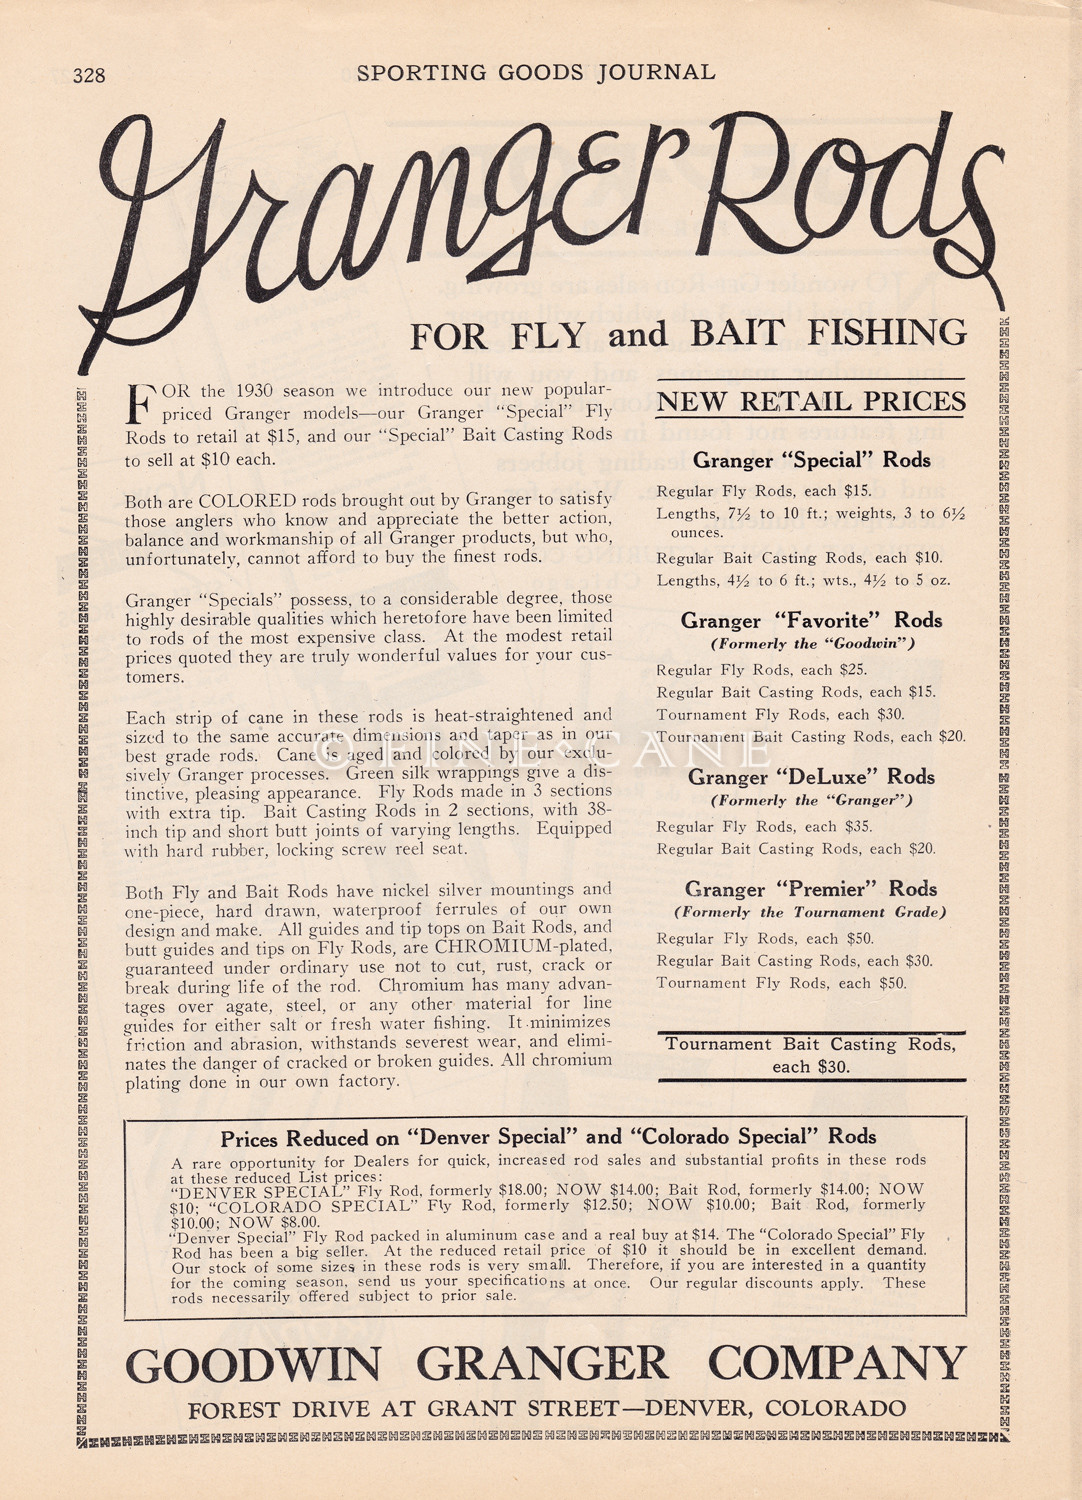 1930 Sporting Goods Journal Ad